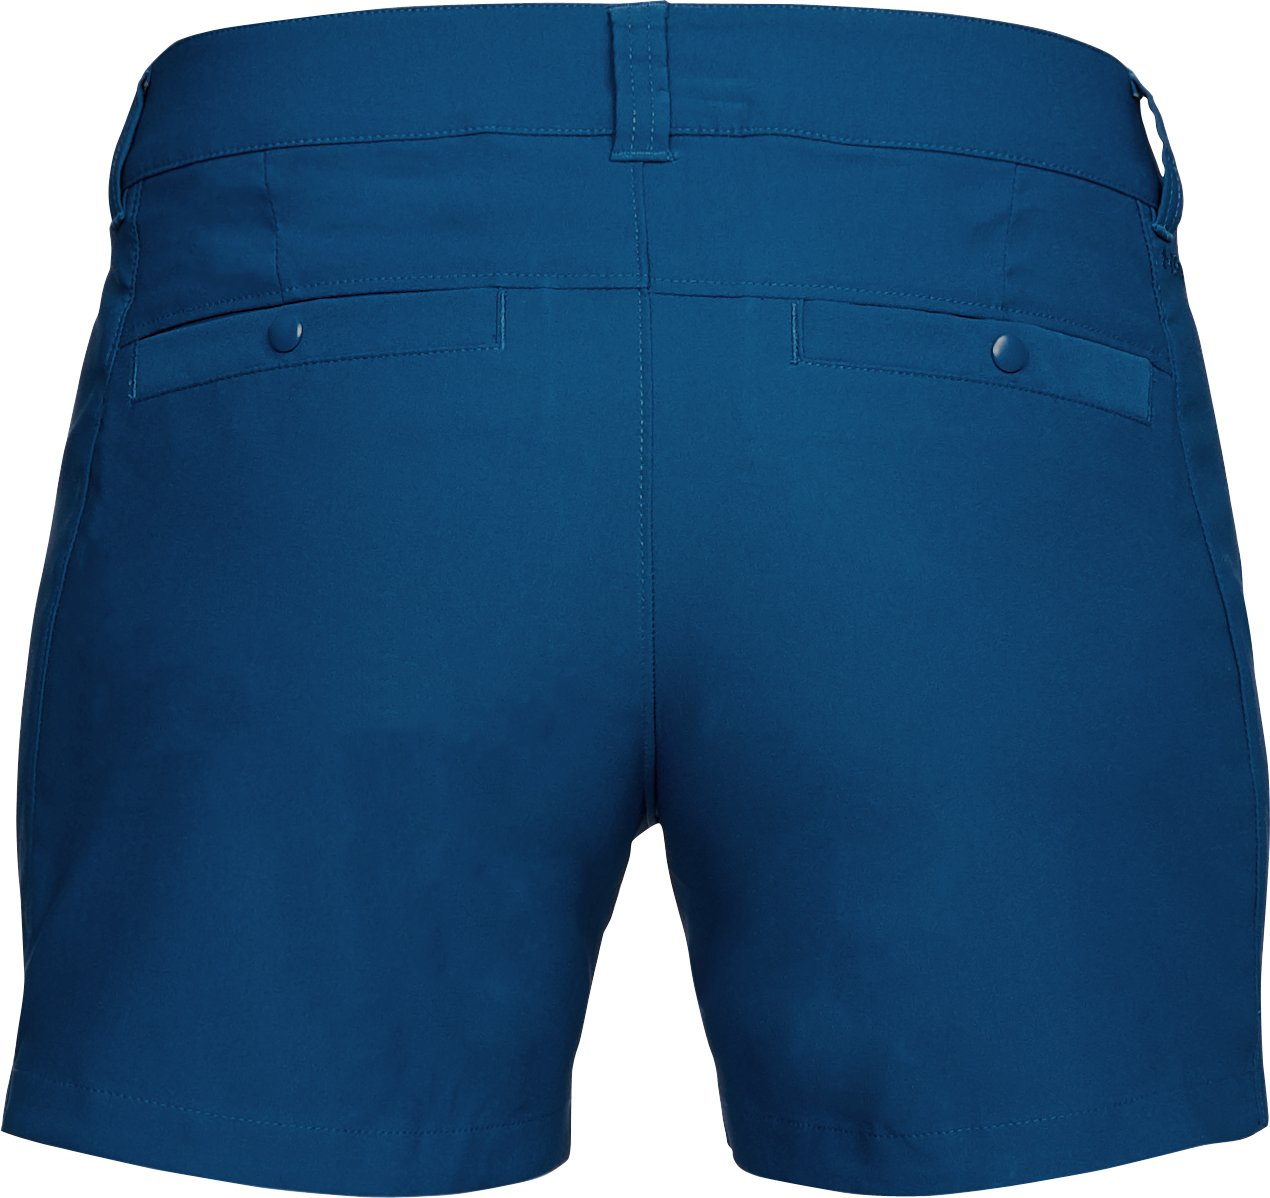 "Women's UA Fish Hunter Shorts - 4"", MOROCCAN BLUE, undefined"